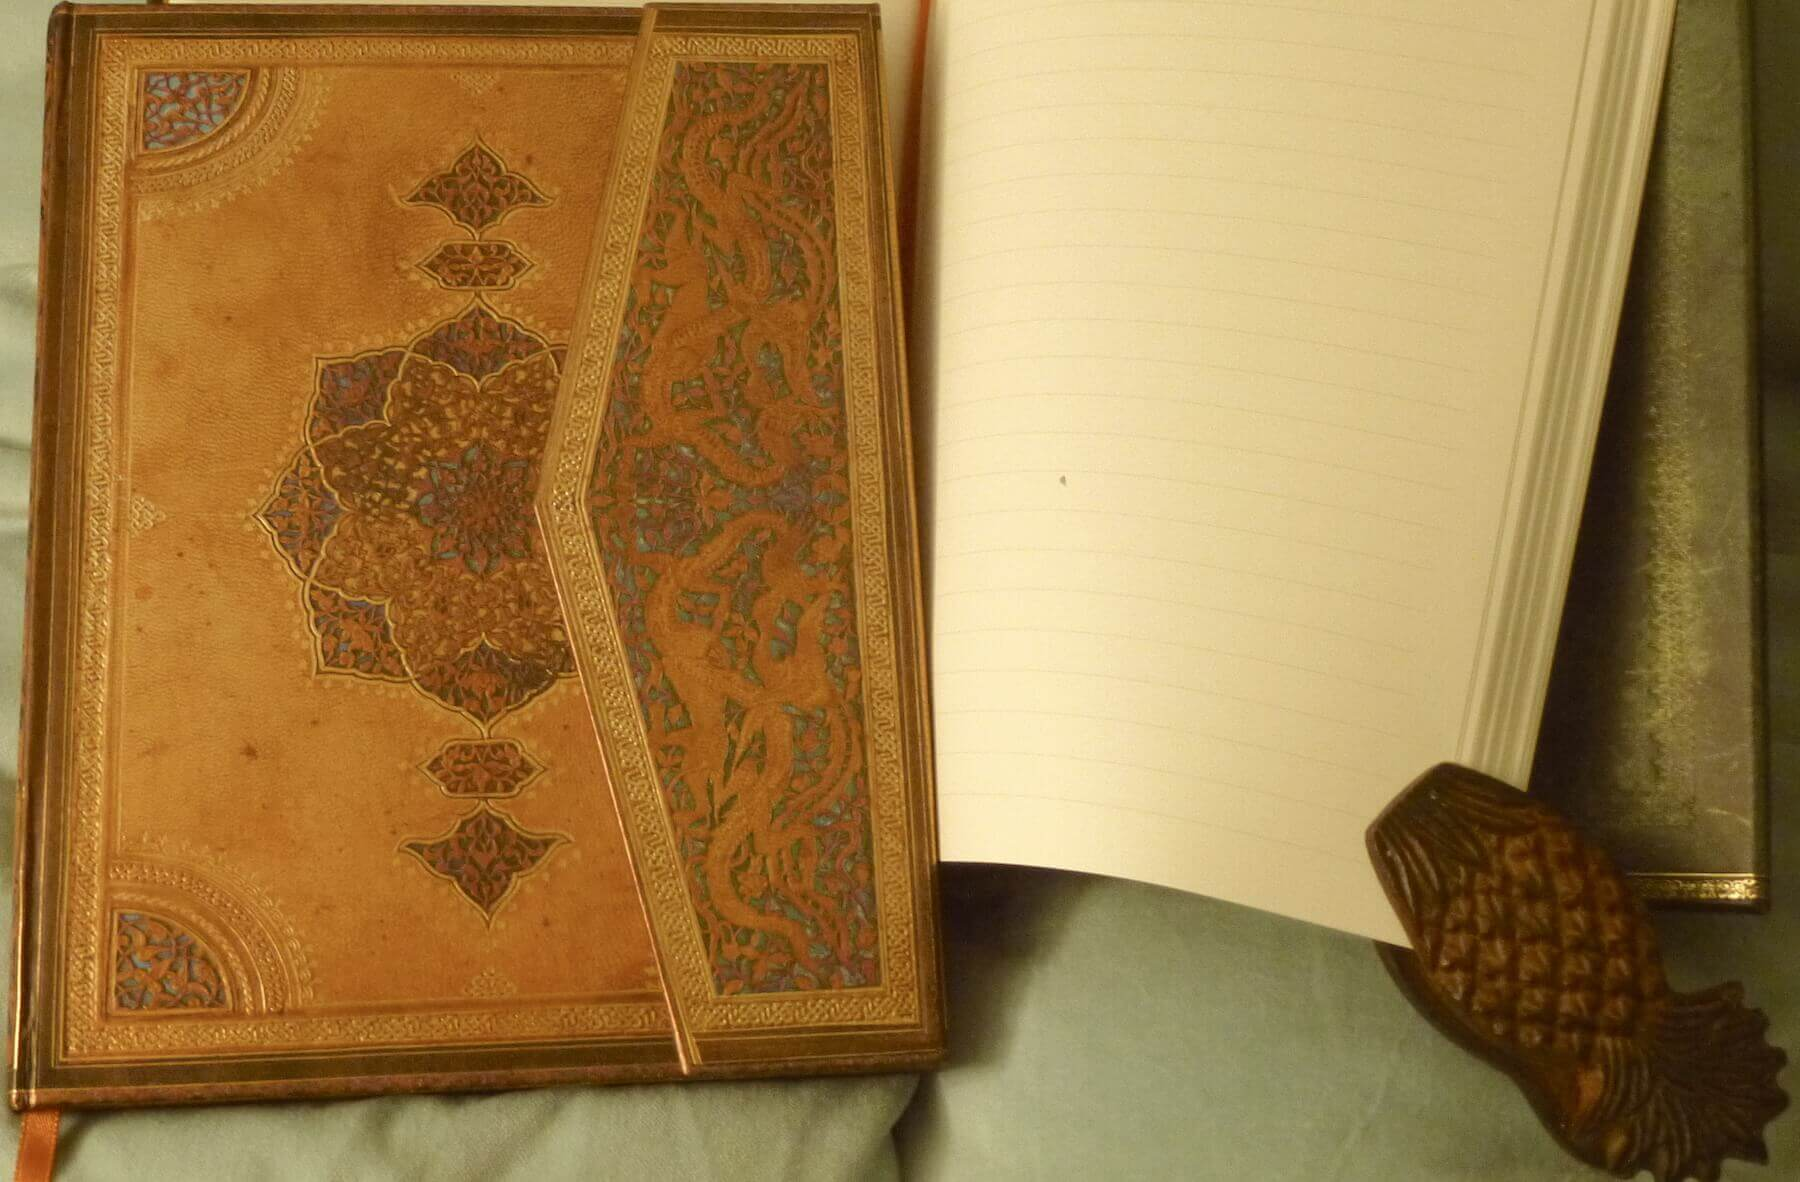 PaperBlanks journal